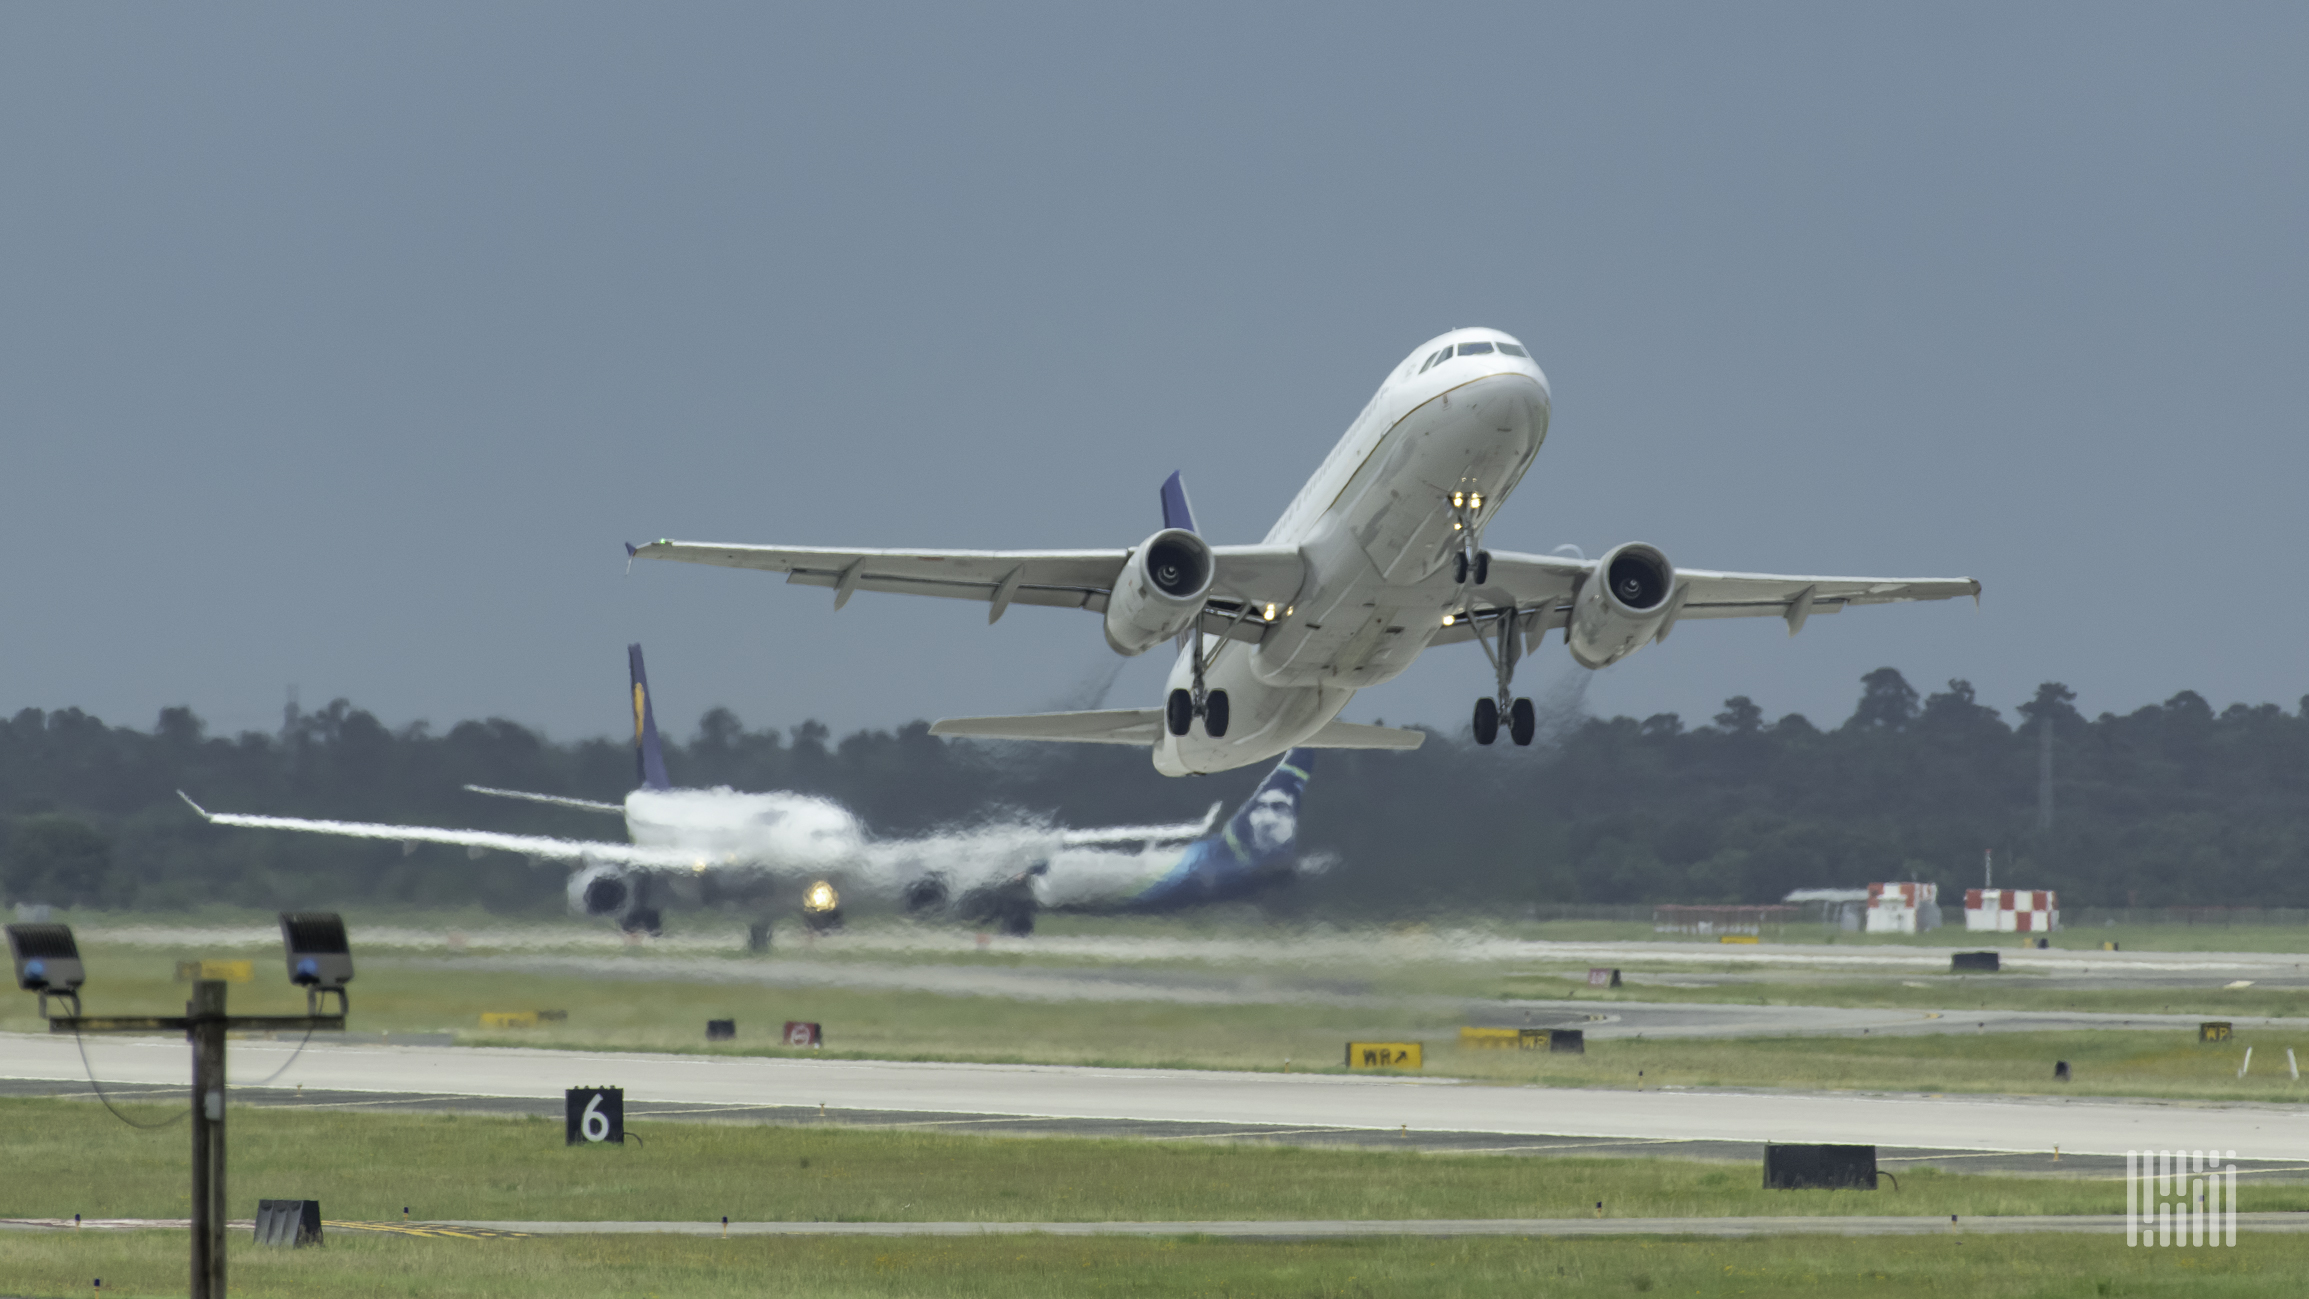 A white plane taking off, approach camera with underside visibile.